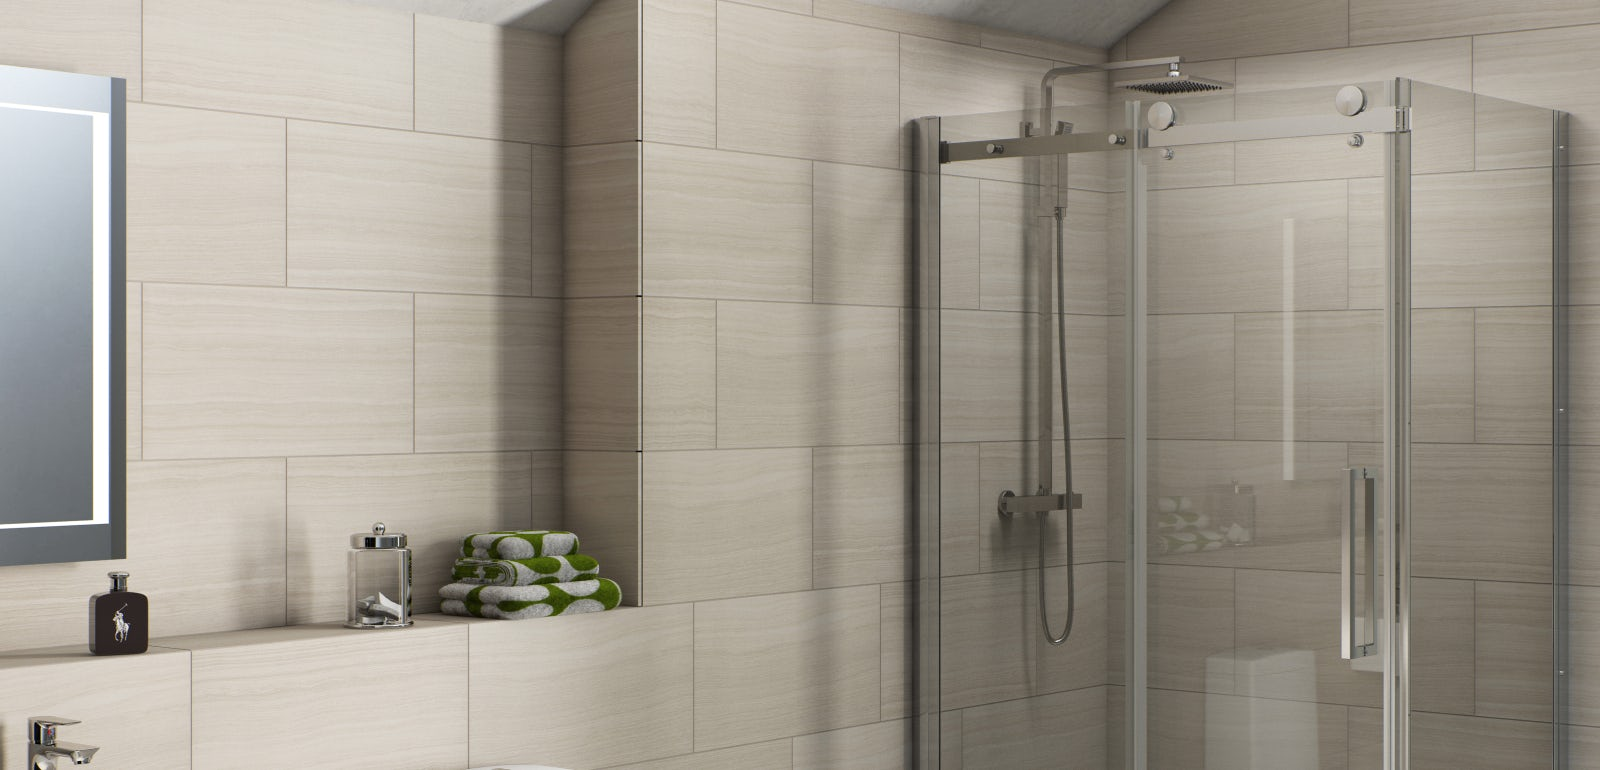 How to Fit a Shower Enclosure | VictoriaPlum.com